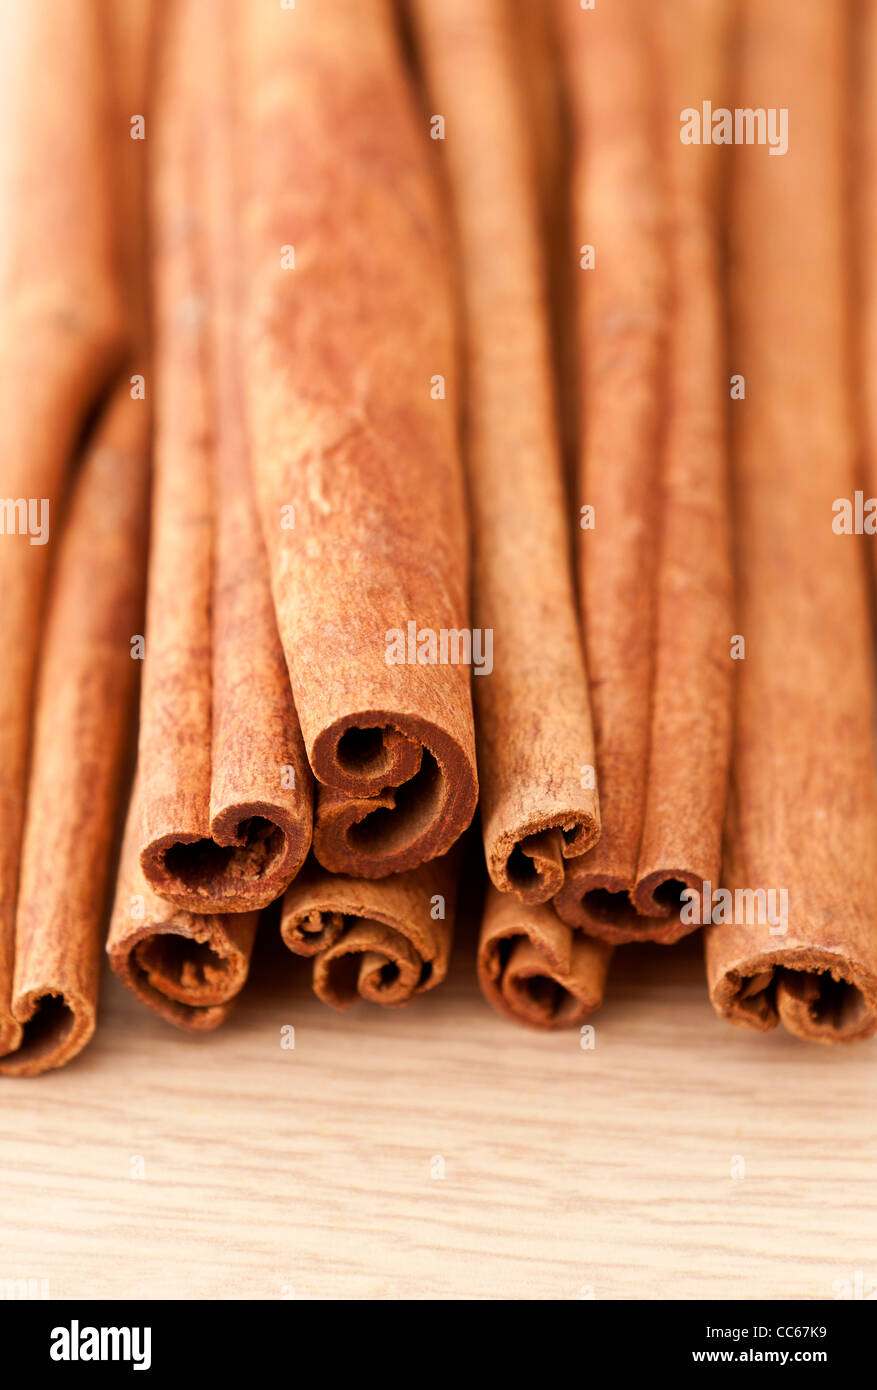 Cinnamon sticks on a wooden table top surface - Stock Image